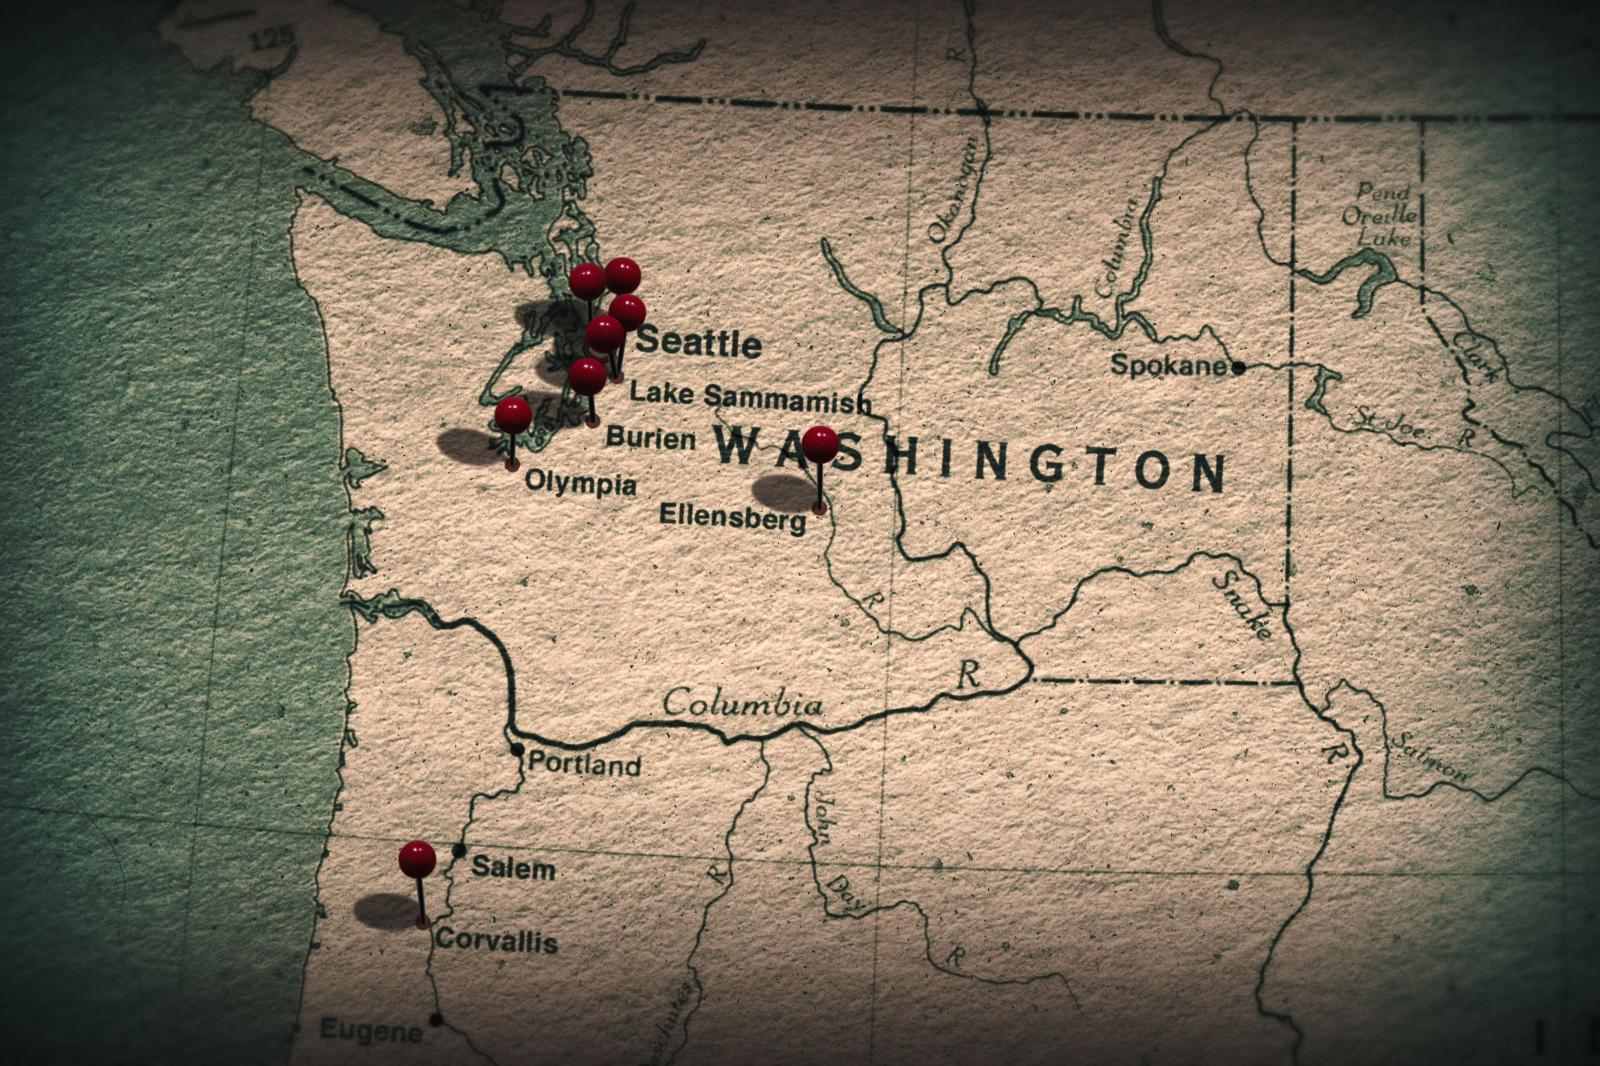 Map of victim disappearances in the Washington area